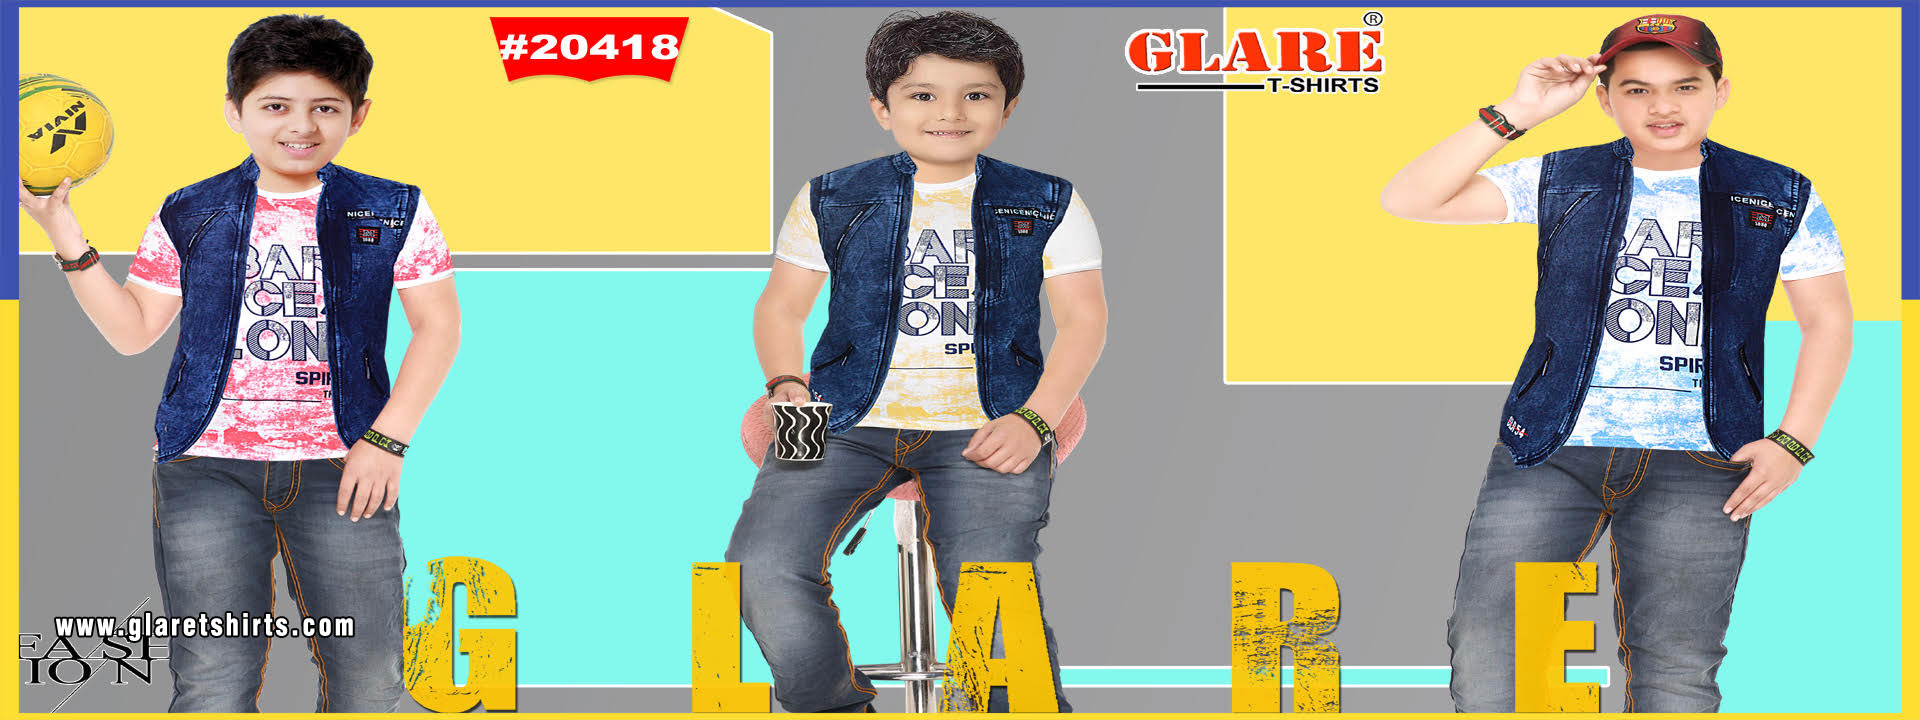 Tshirts for Boys Tshirts for Girls Kids Wears Sweatshirts for Girls and Boys Zippers Hoodies Kids Clothing Kids Garments manufacturer wholesale suppliers in India Punjab Ludhiana